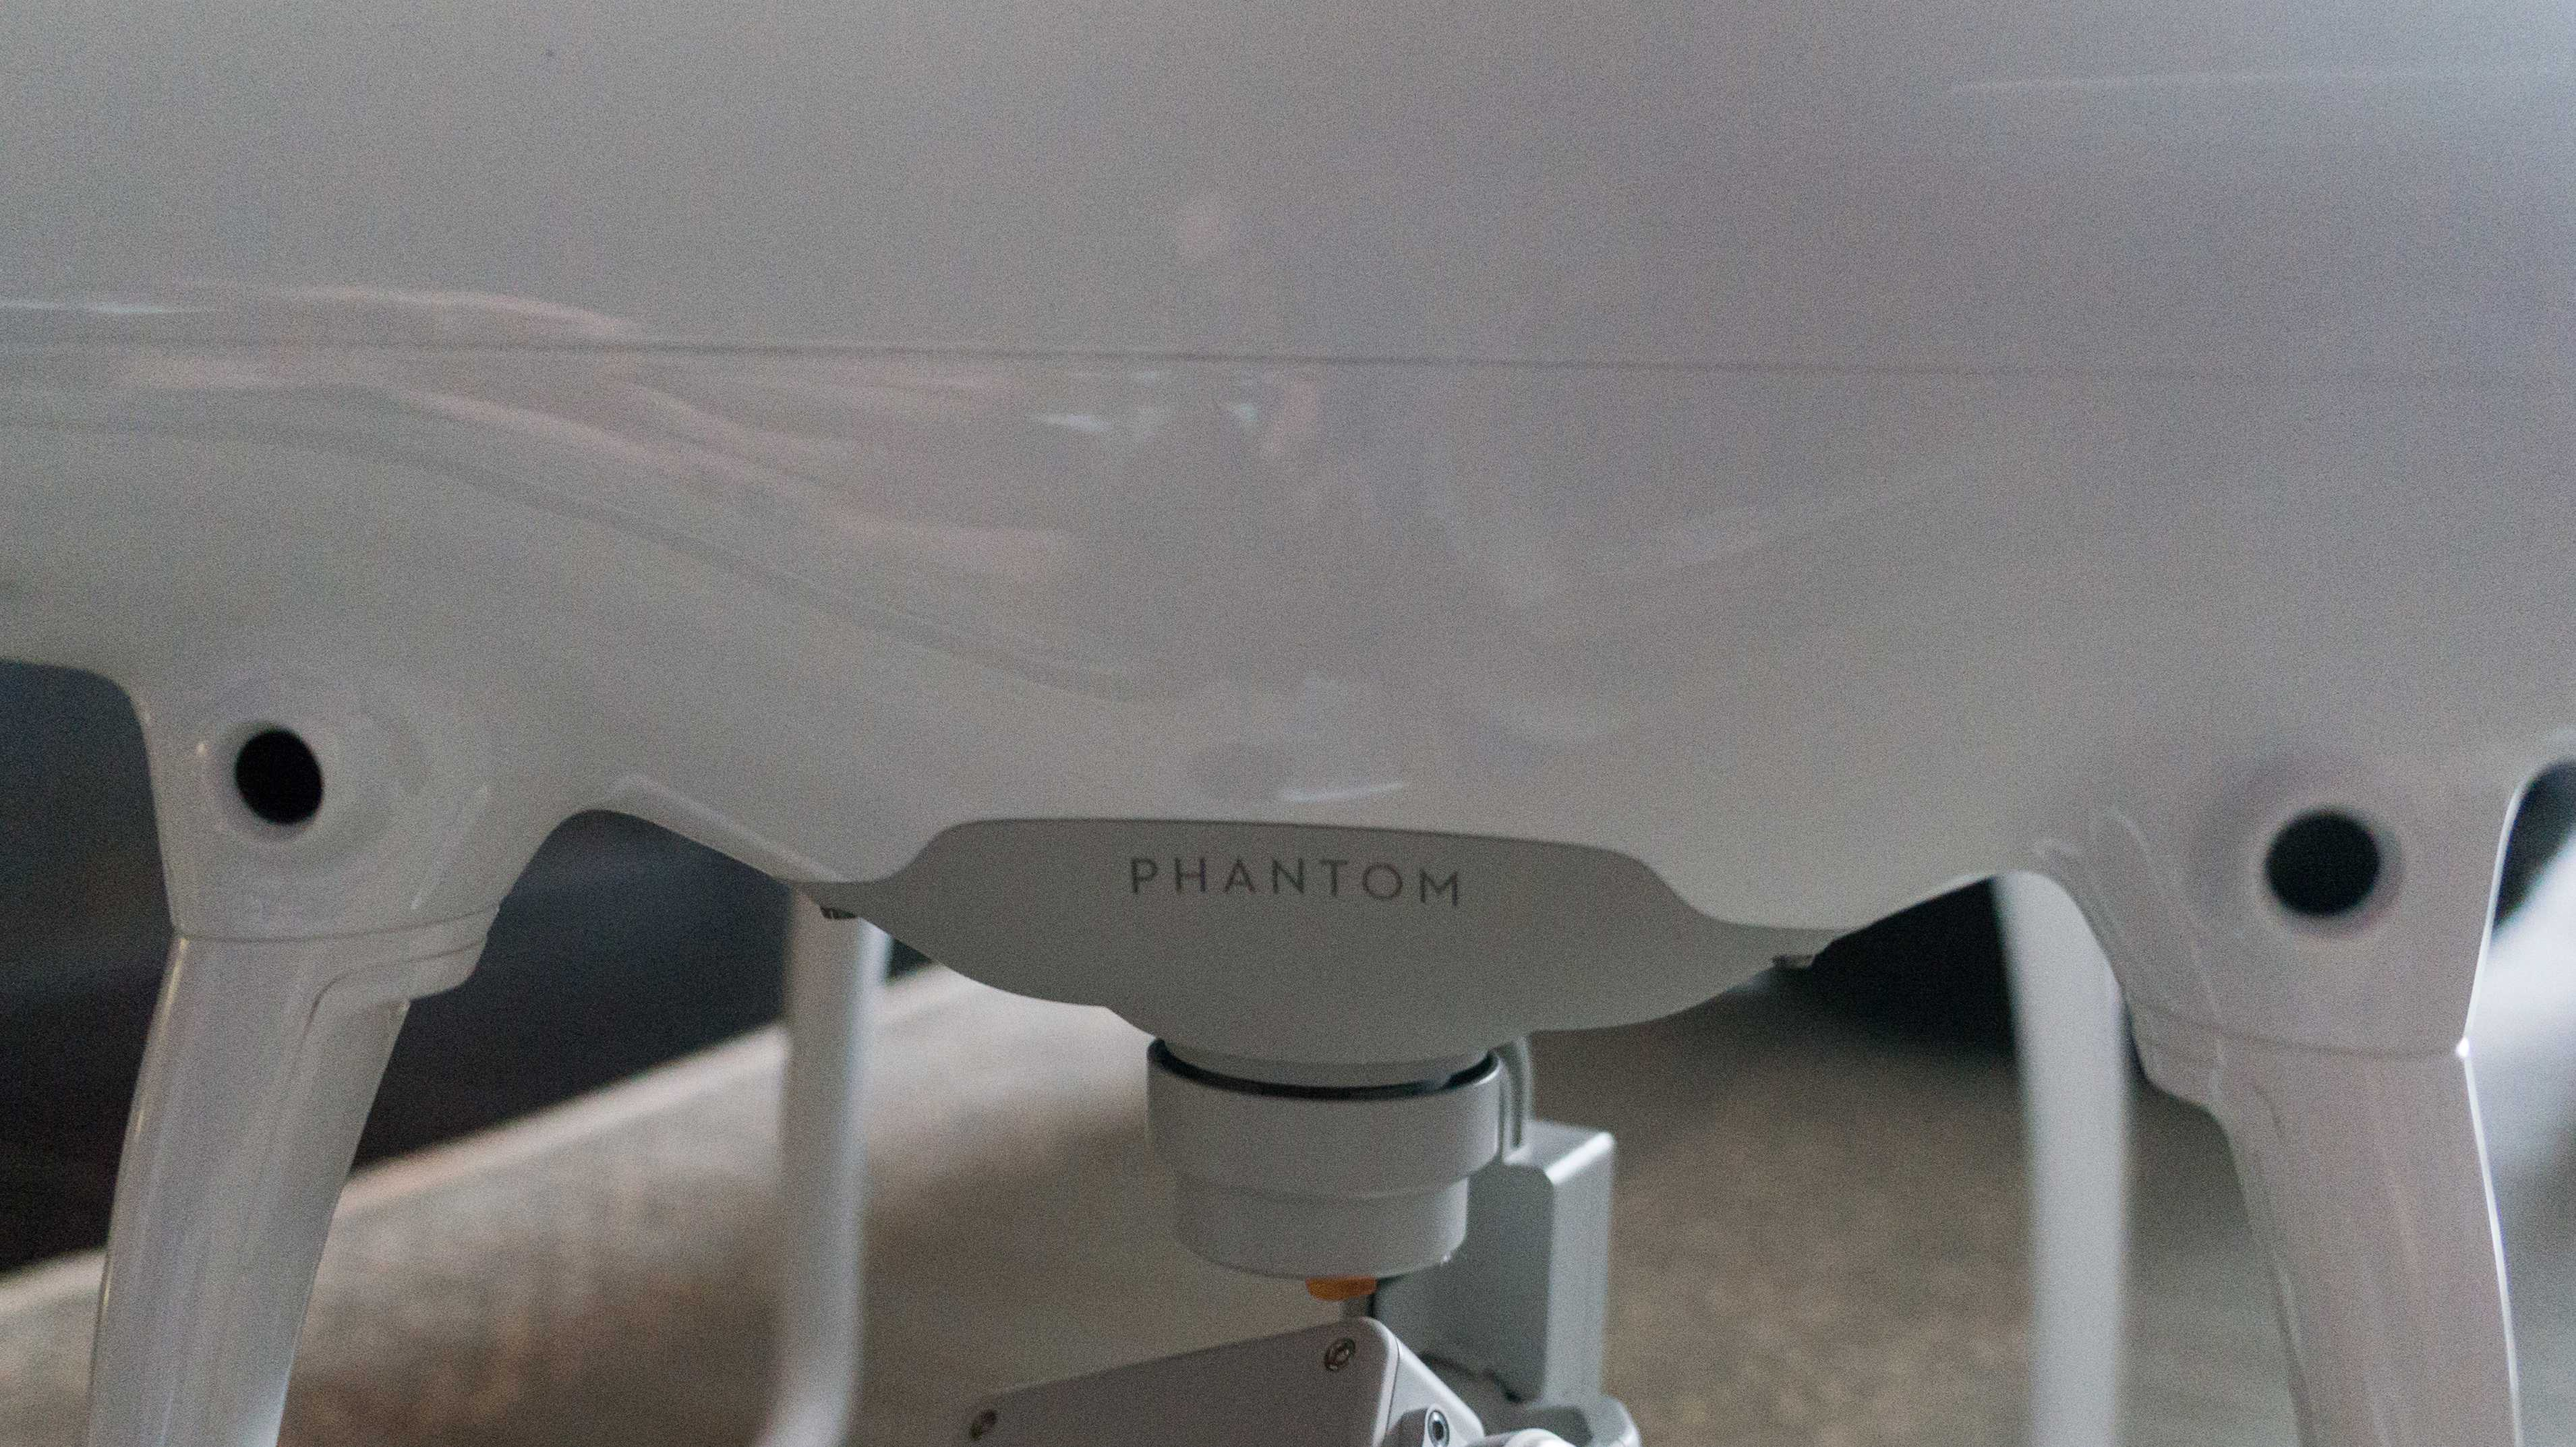 DJIs neuer Quadkopter Phantom 4 im Detail